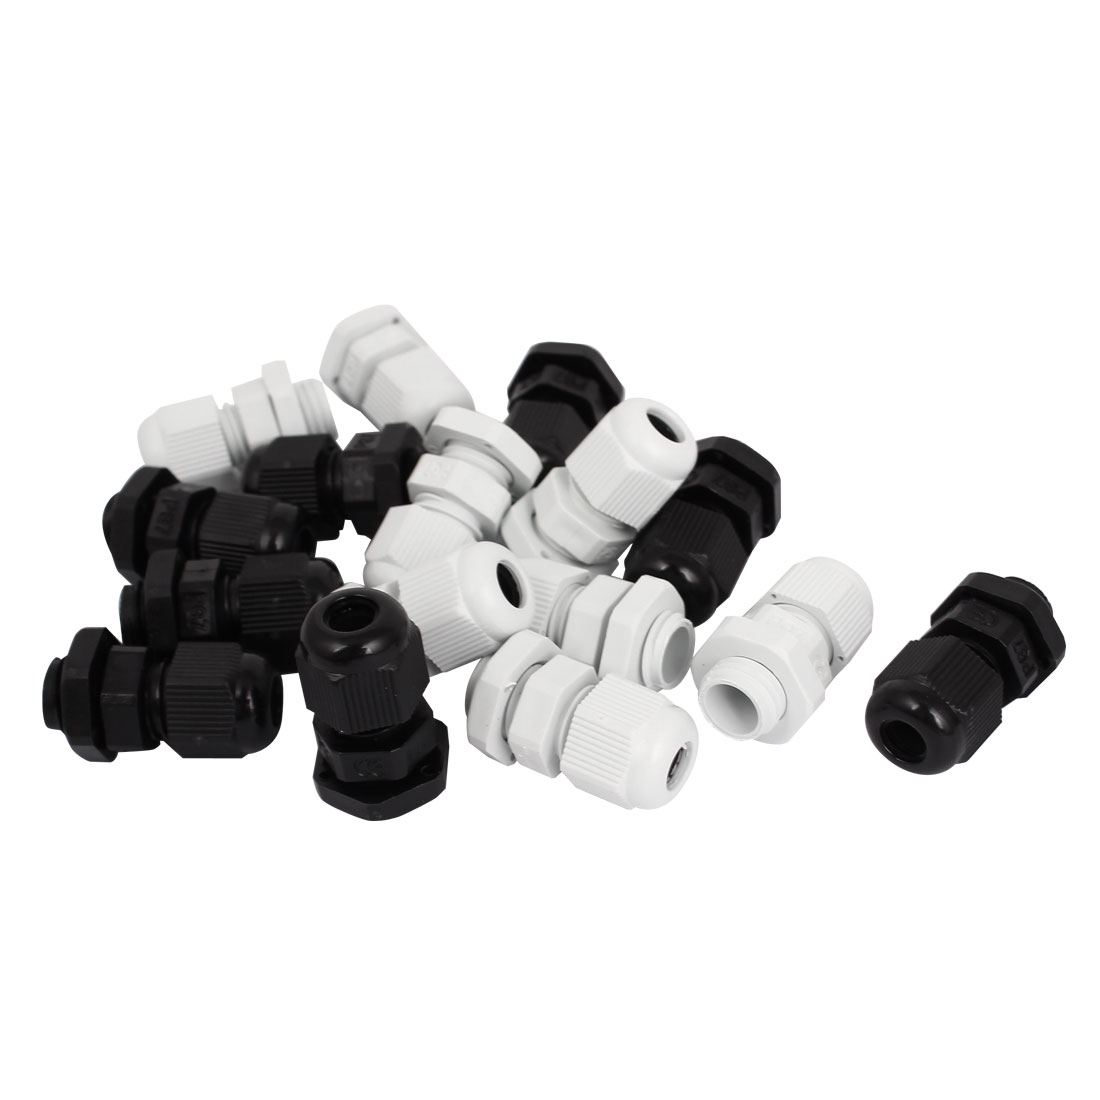 PG7 Waterproof Cable Glands Clamp White Black Plastic Connector 14pcs